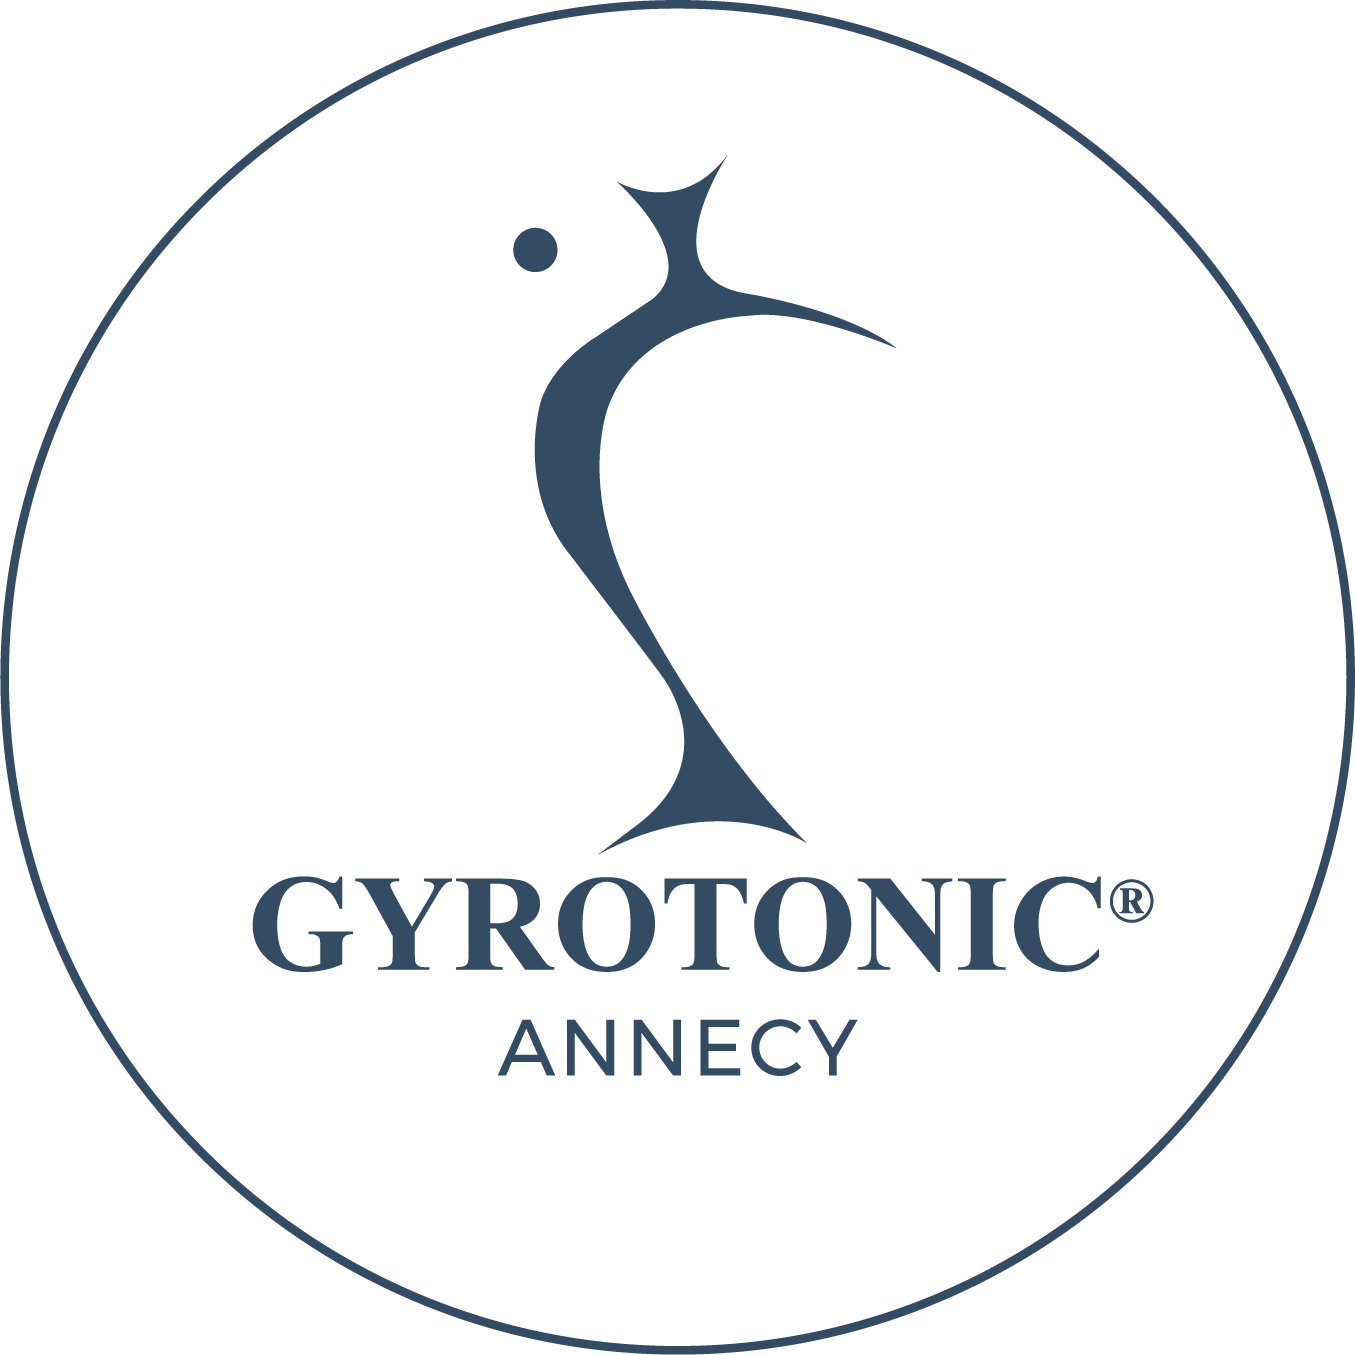 Gyrotonic Annecy